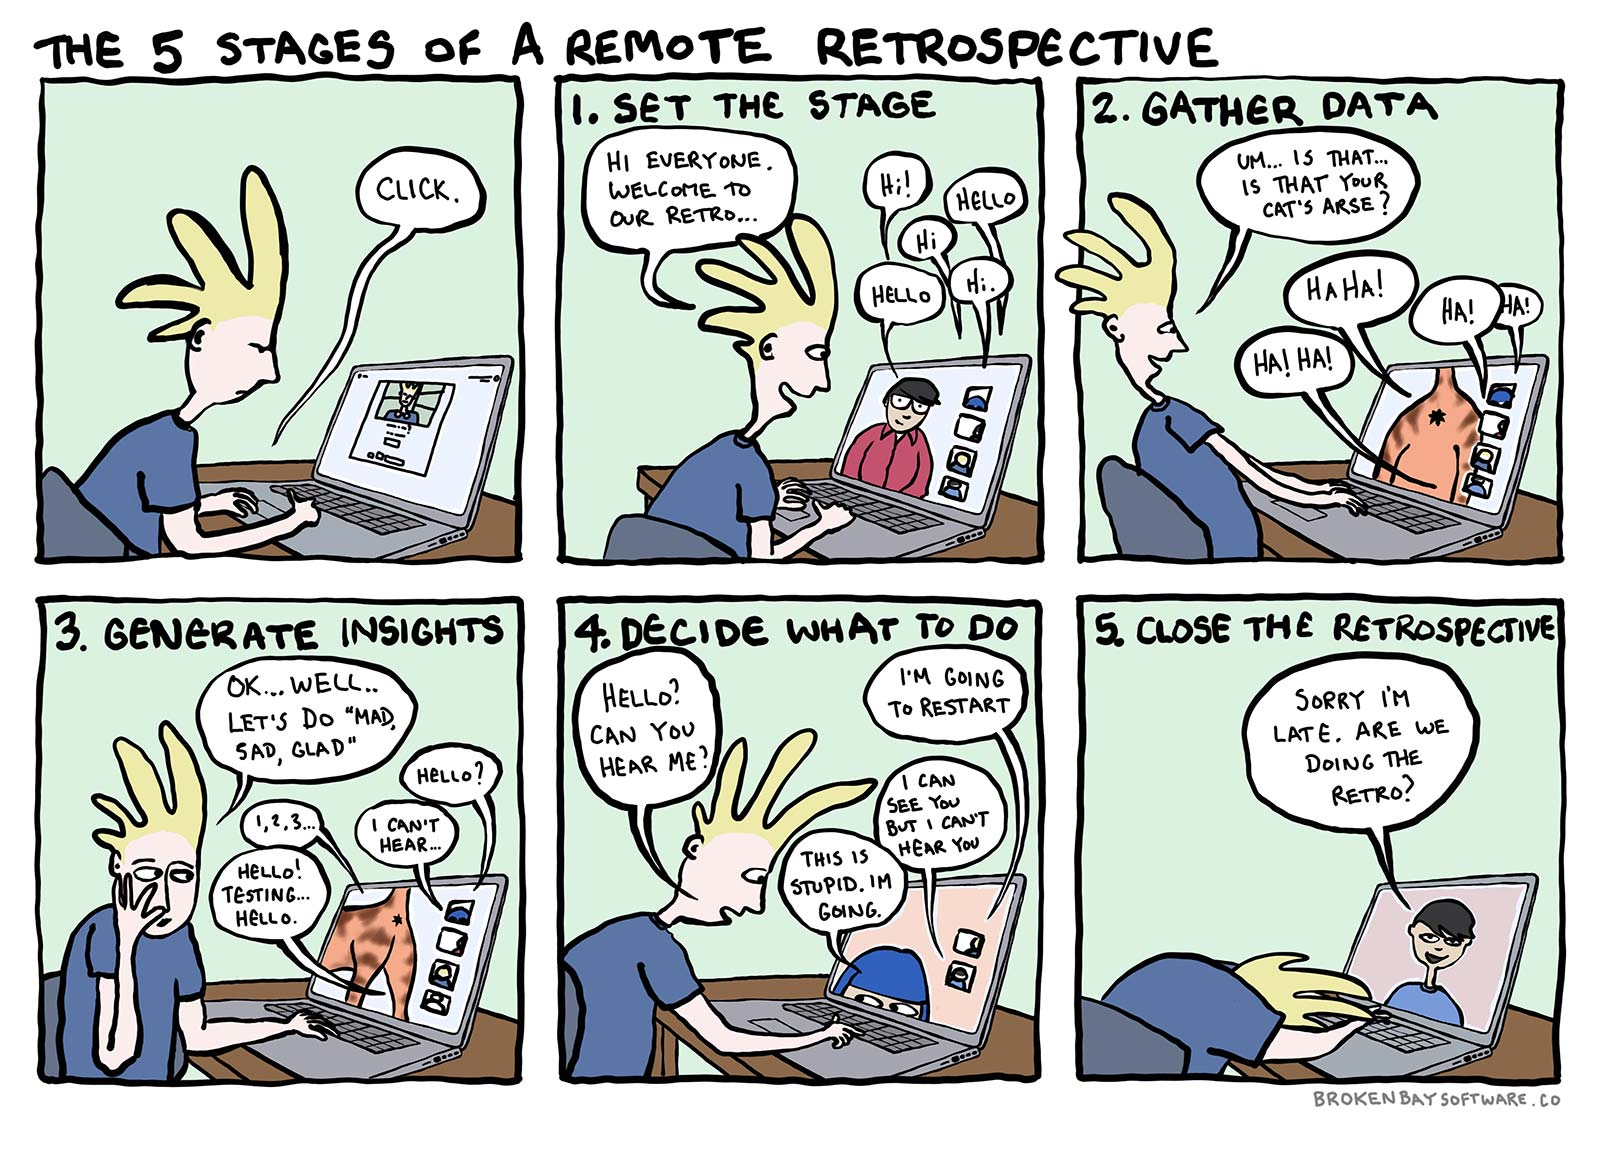 The 5 Stages of a Remote Retrospective